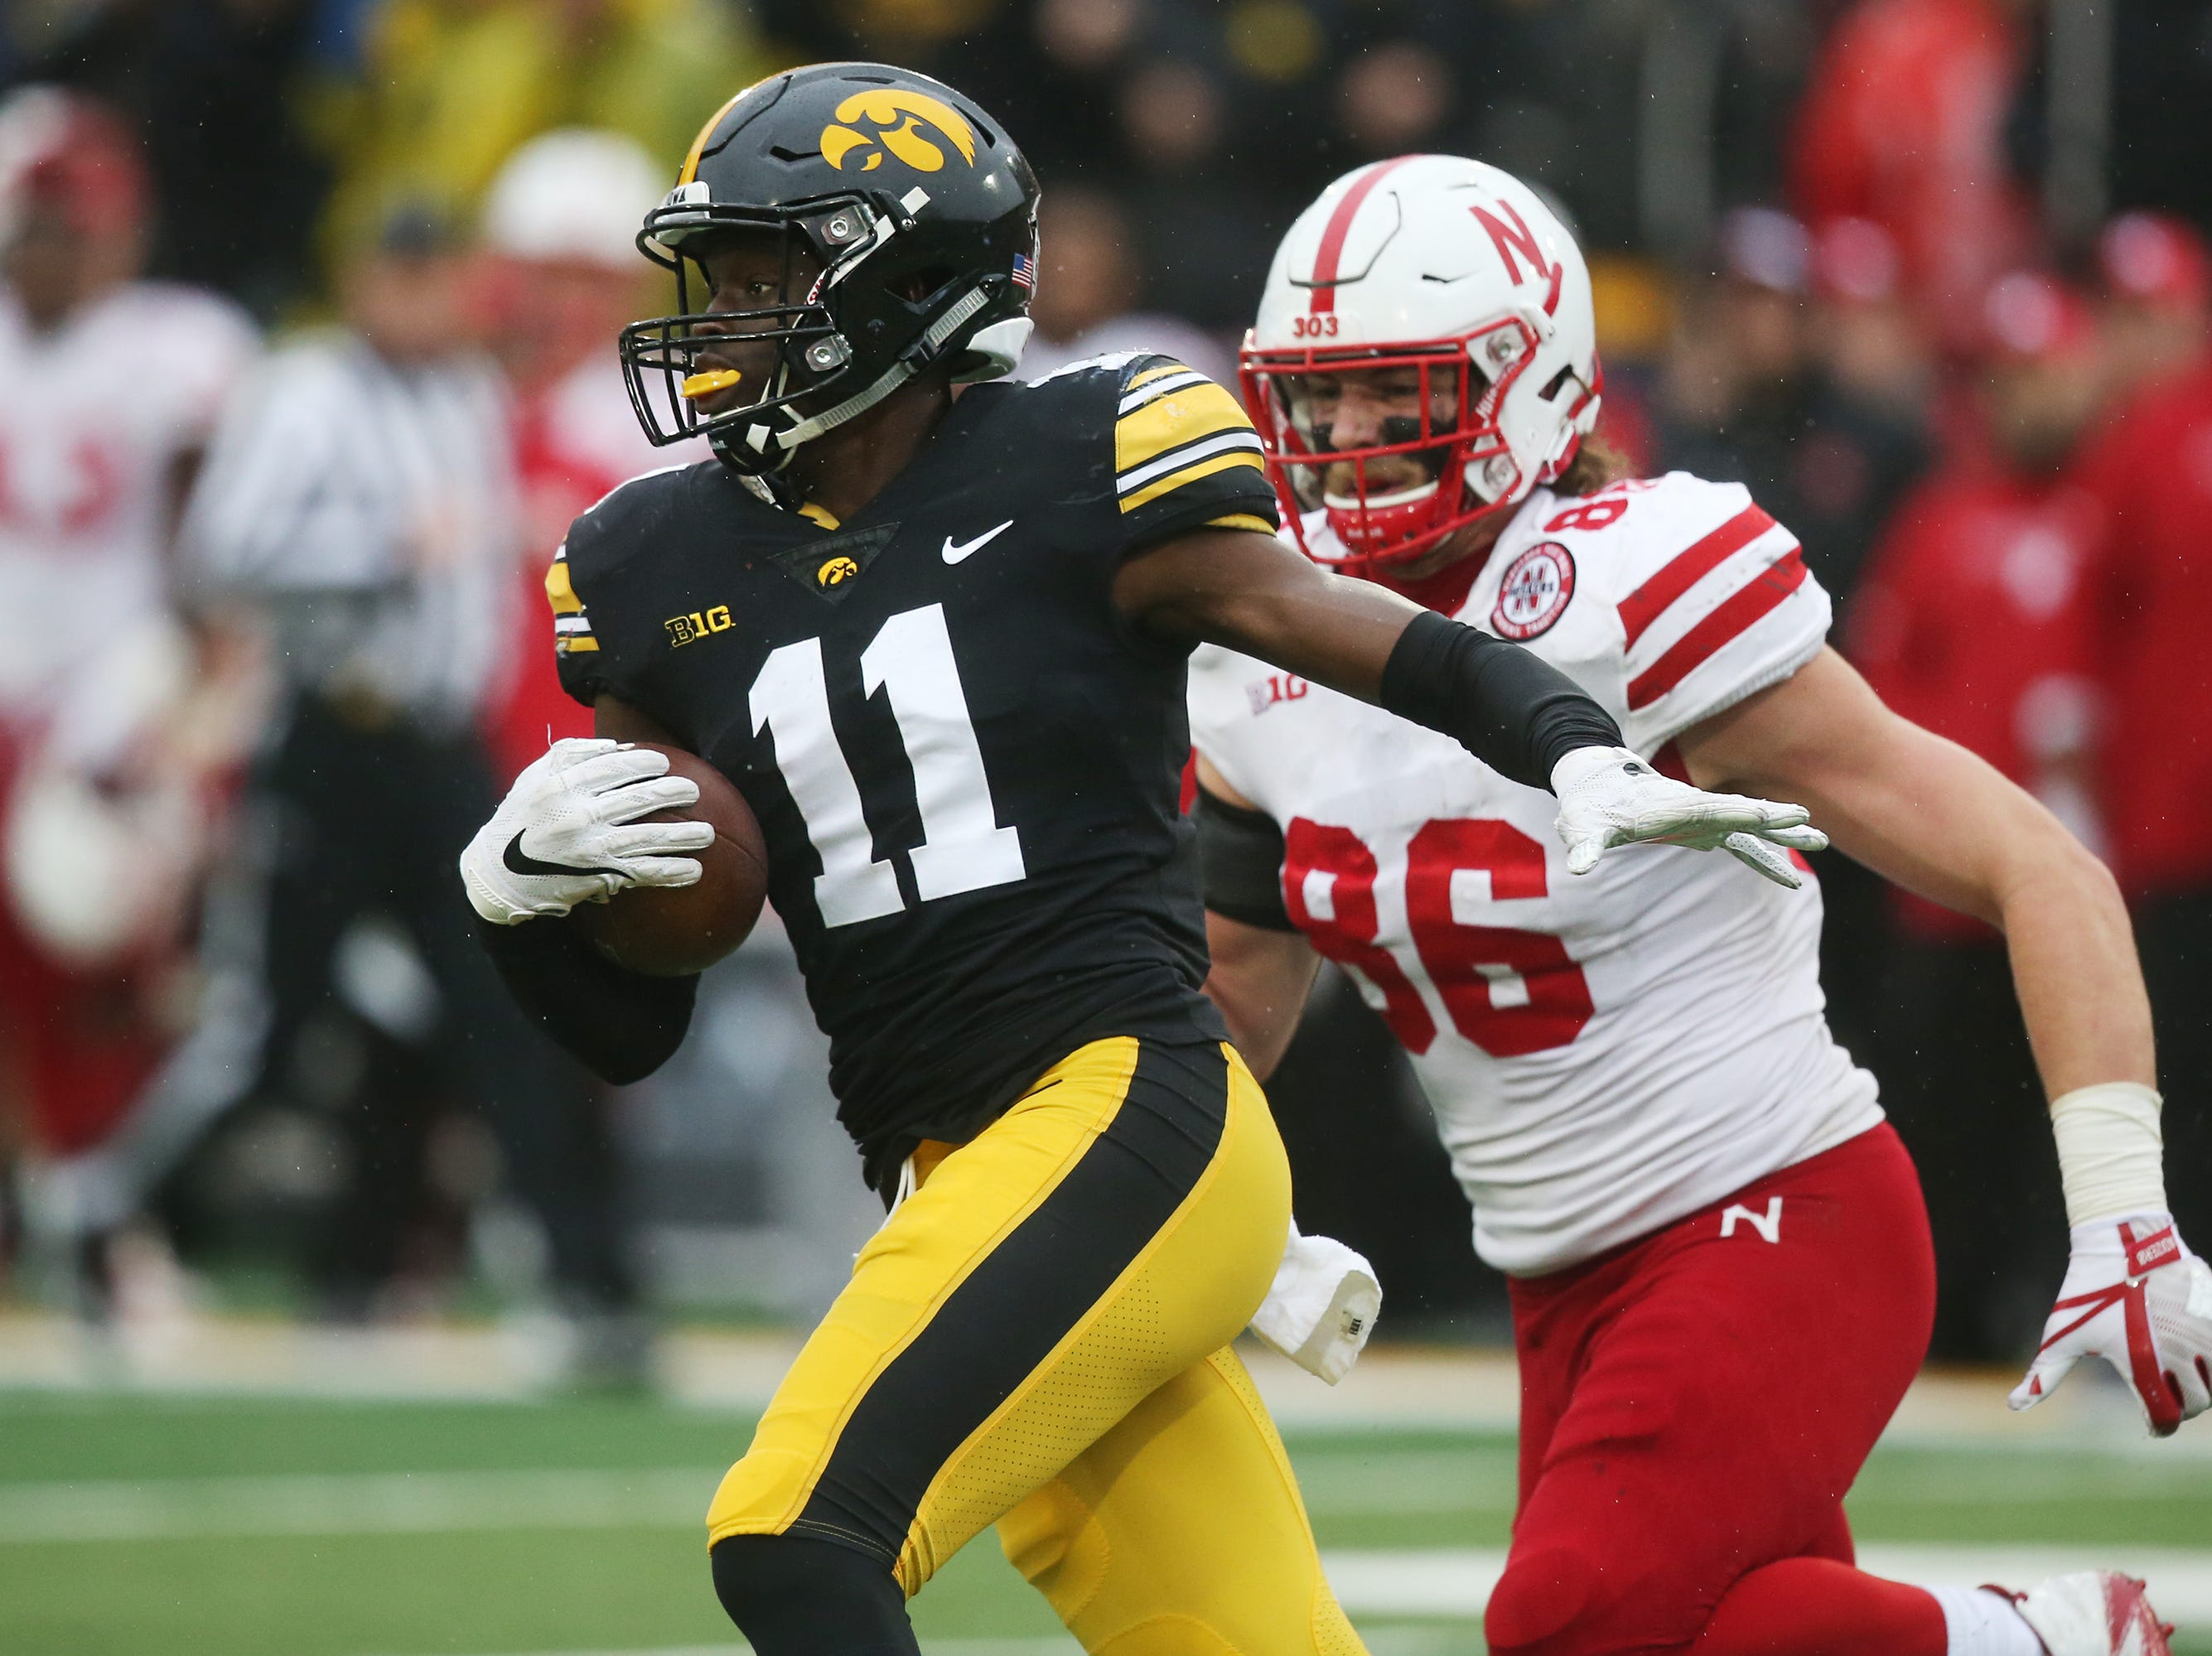 Iowa's Michael Ojemudia picks up an interception during the senior day match-up between the Iowa Hawkeyes and the Nebraska Cornhuskers on Friday, Nov. 23, 2018, at Kinnick Stadium, in Iowa City.